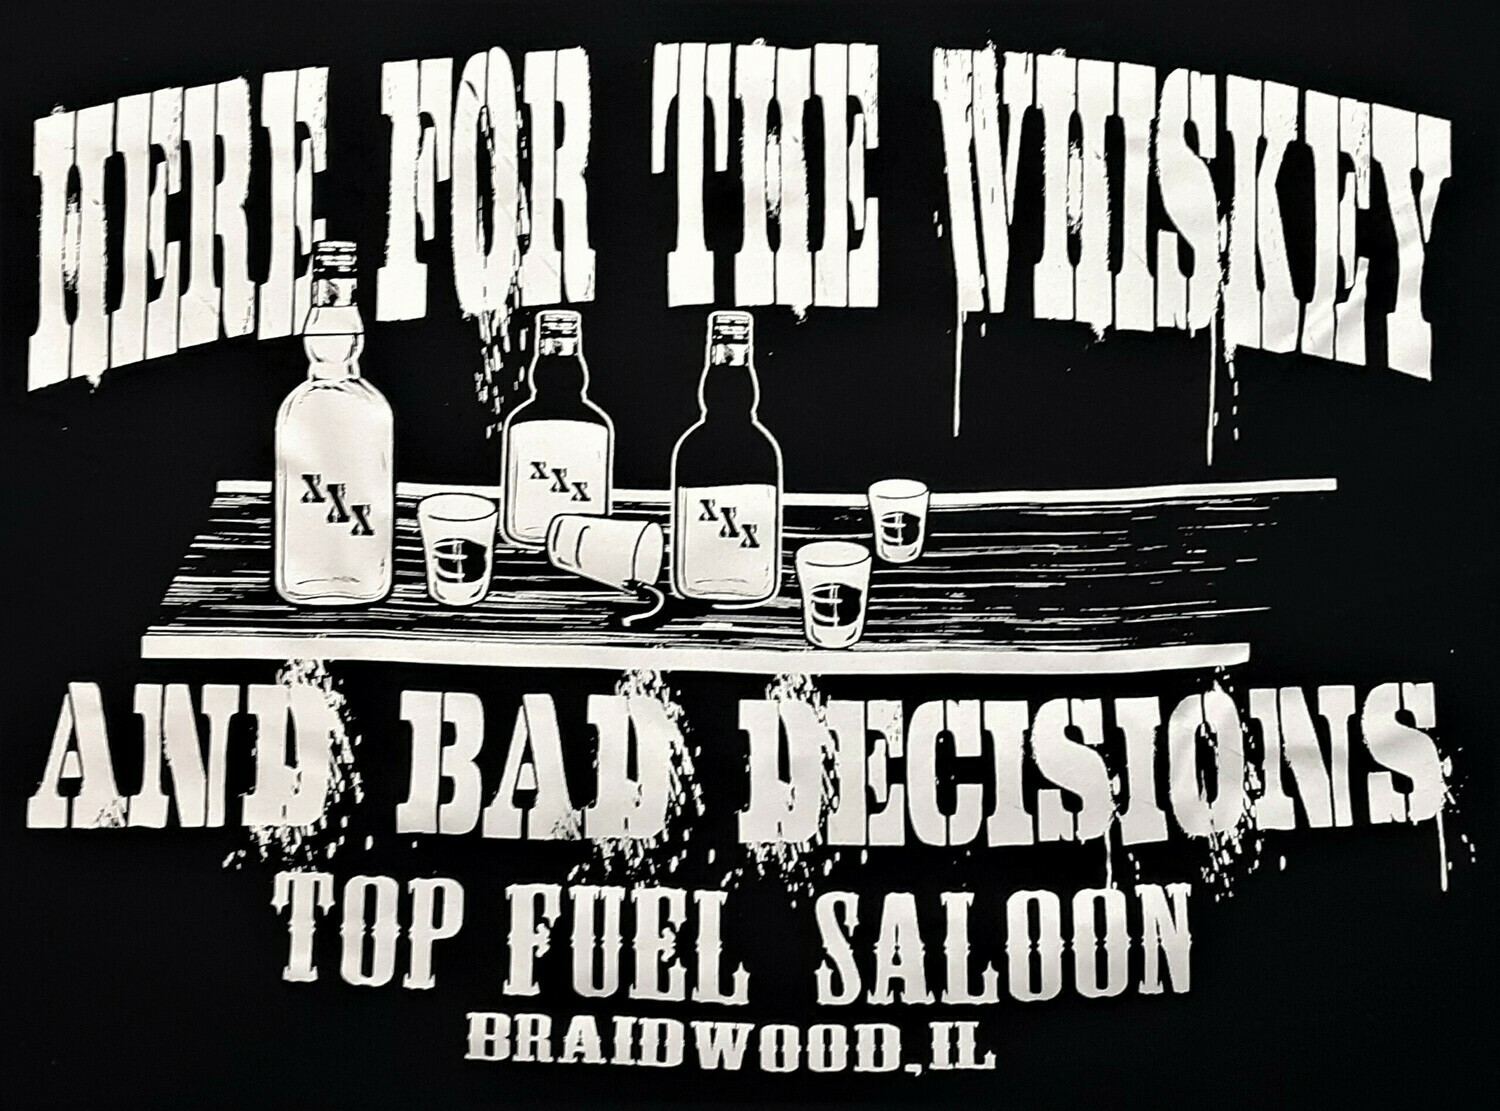 T/F.S. Whiskey & Bag Decisions Shirt